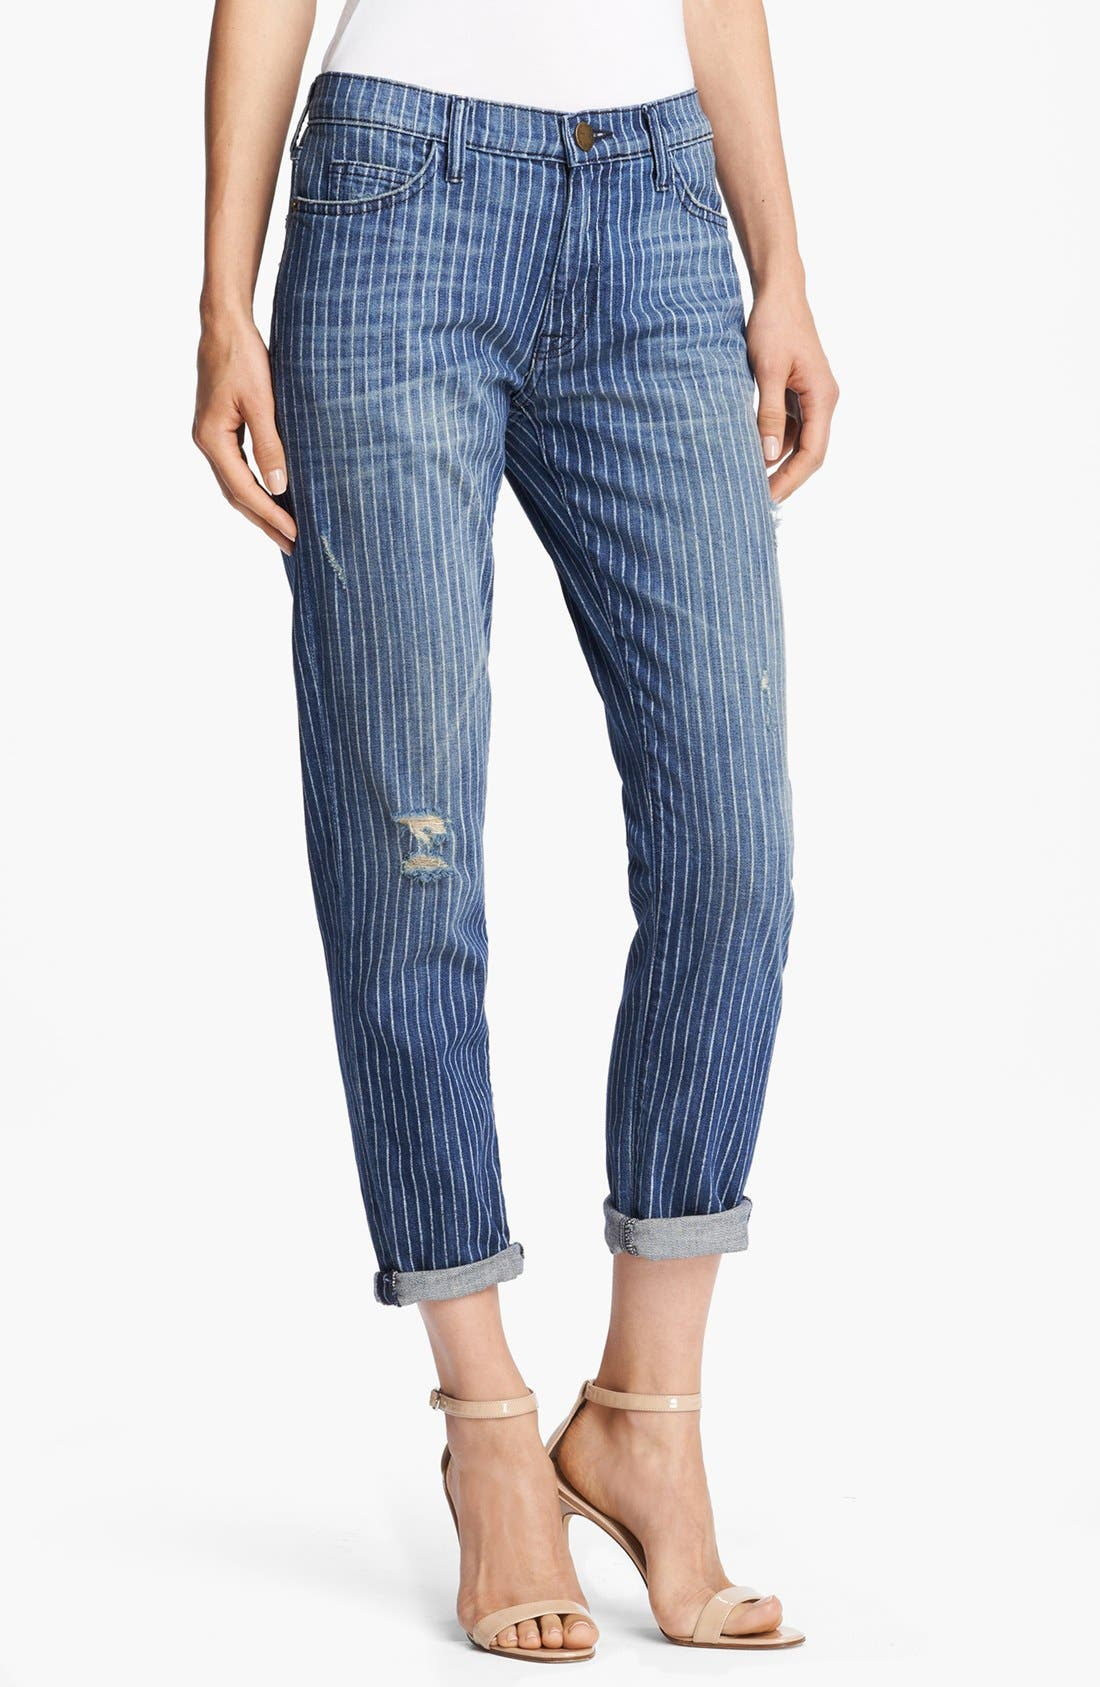 Main Image - Current/Elliott 'The Fling' Pinstripe Jeans